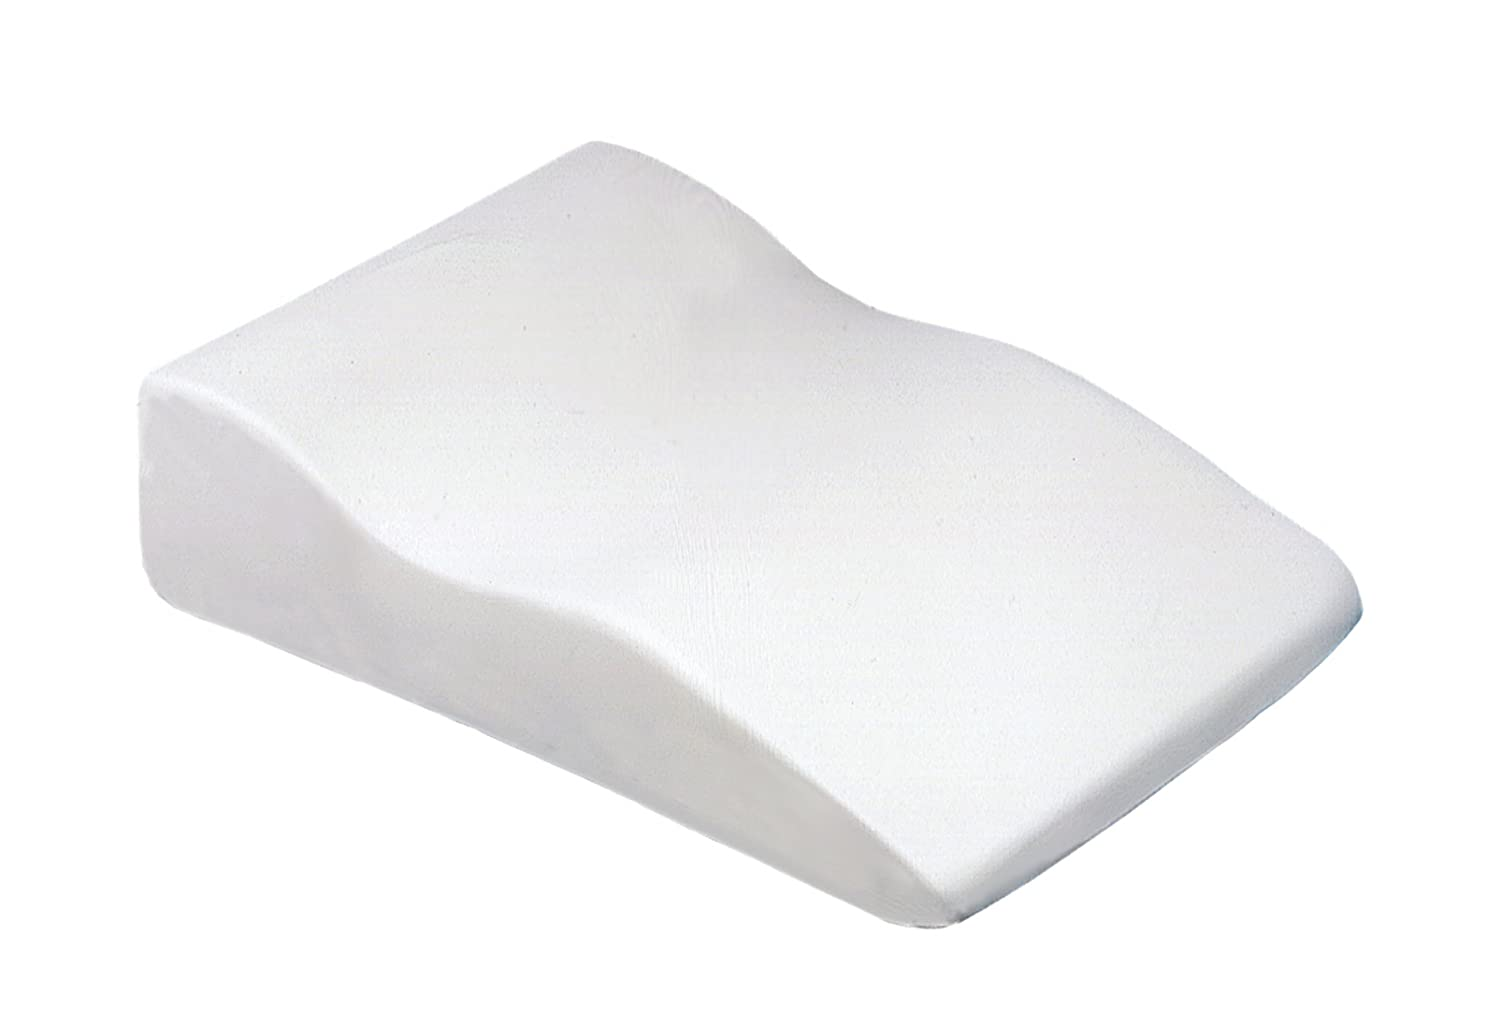 SISSEL Venosoft Leg Pillow Largel with White Visco elastic cover Temp Control Leg Elevator Cushion,Support and Elevation Pillow for Surgery, Injury, or Rest 5501VS 140.002_Bianco